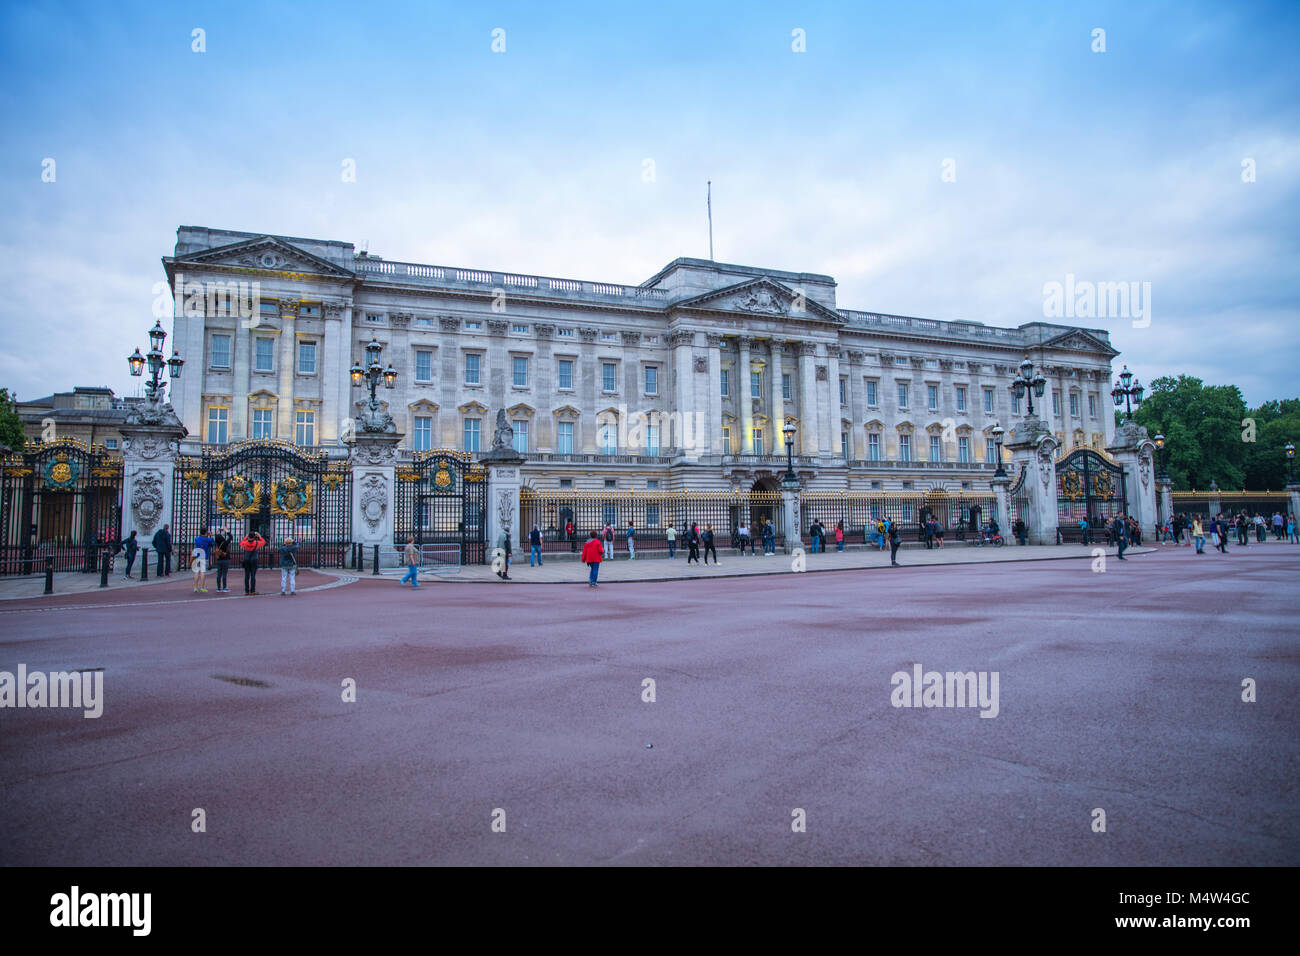 Buckingham Palace, london - Stock Image